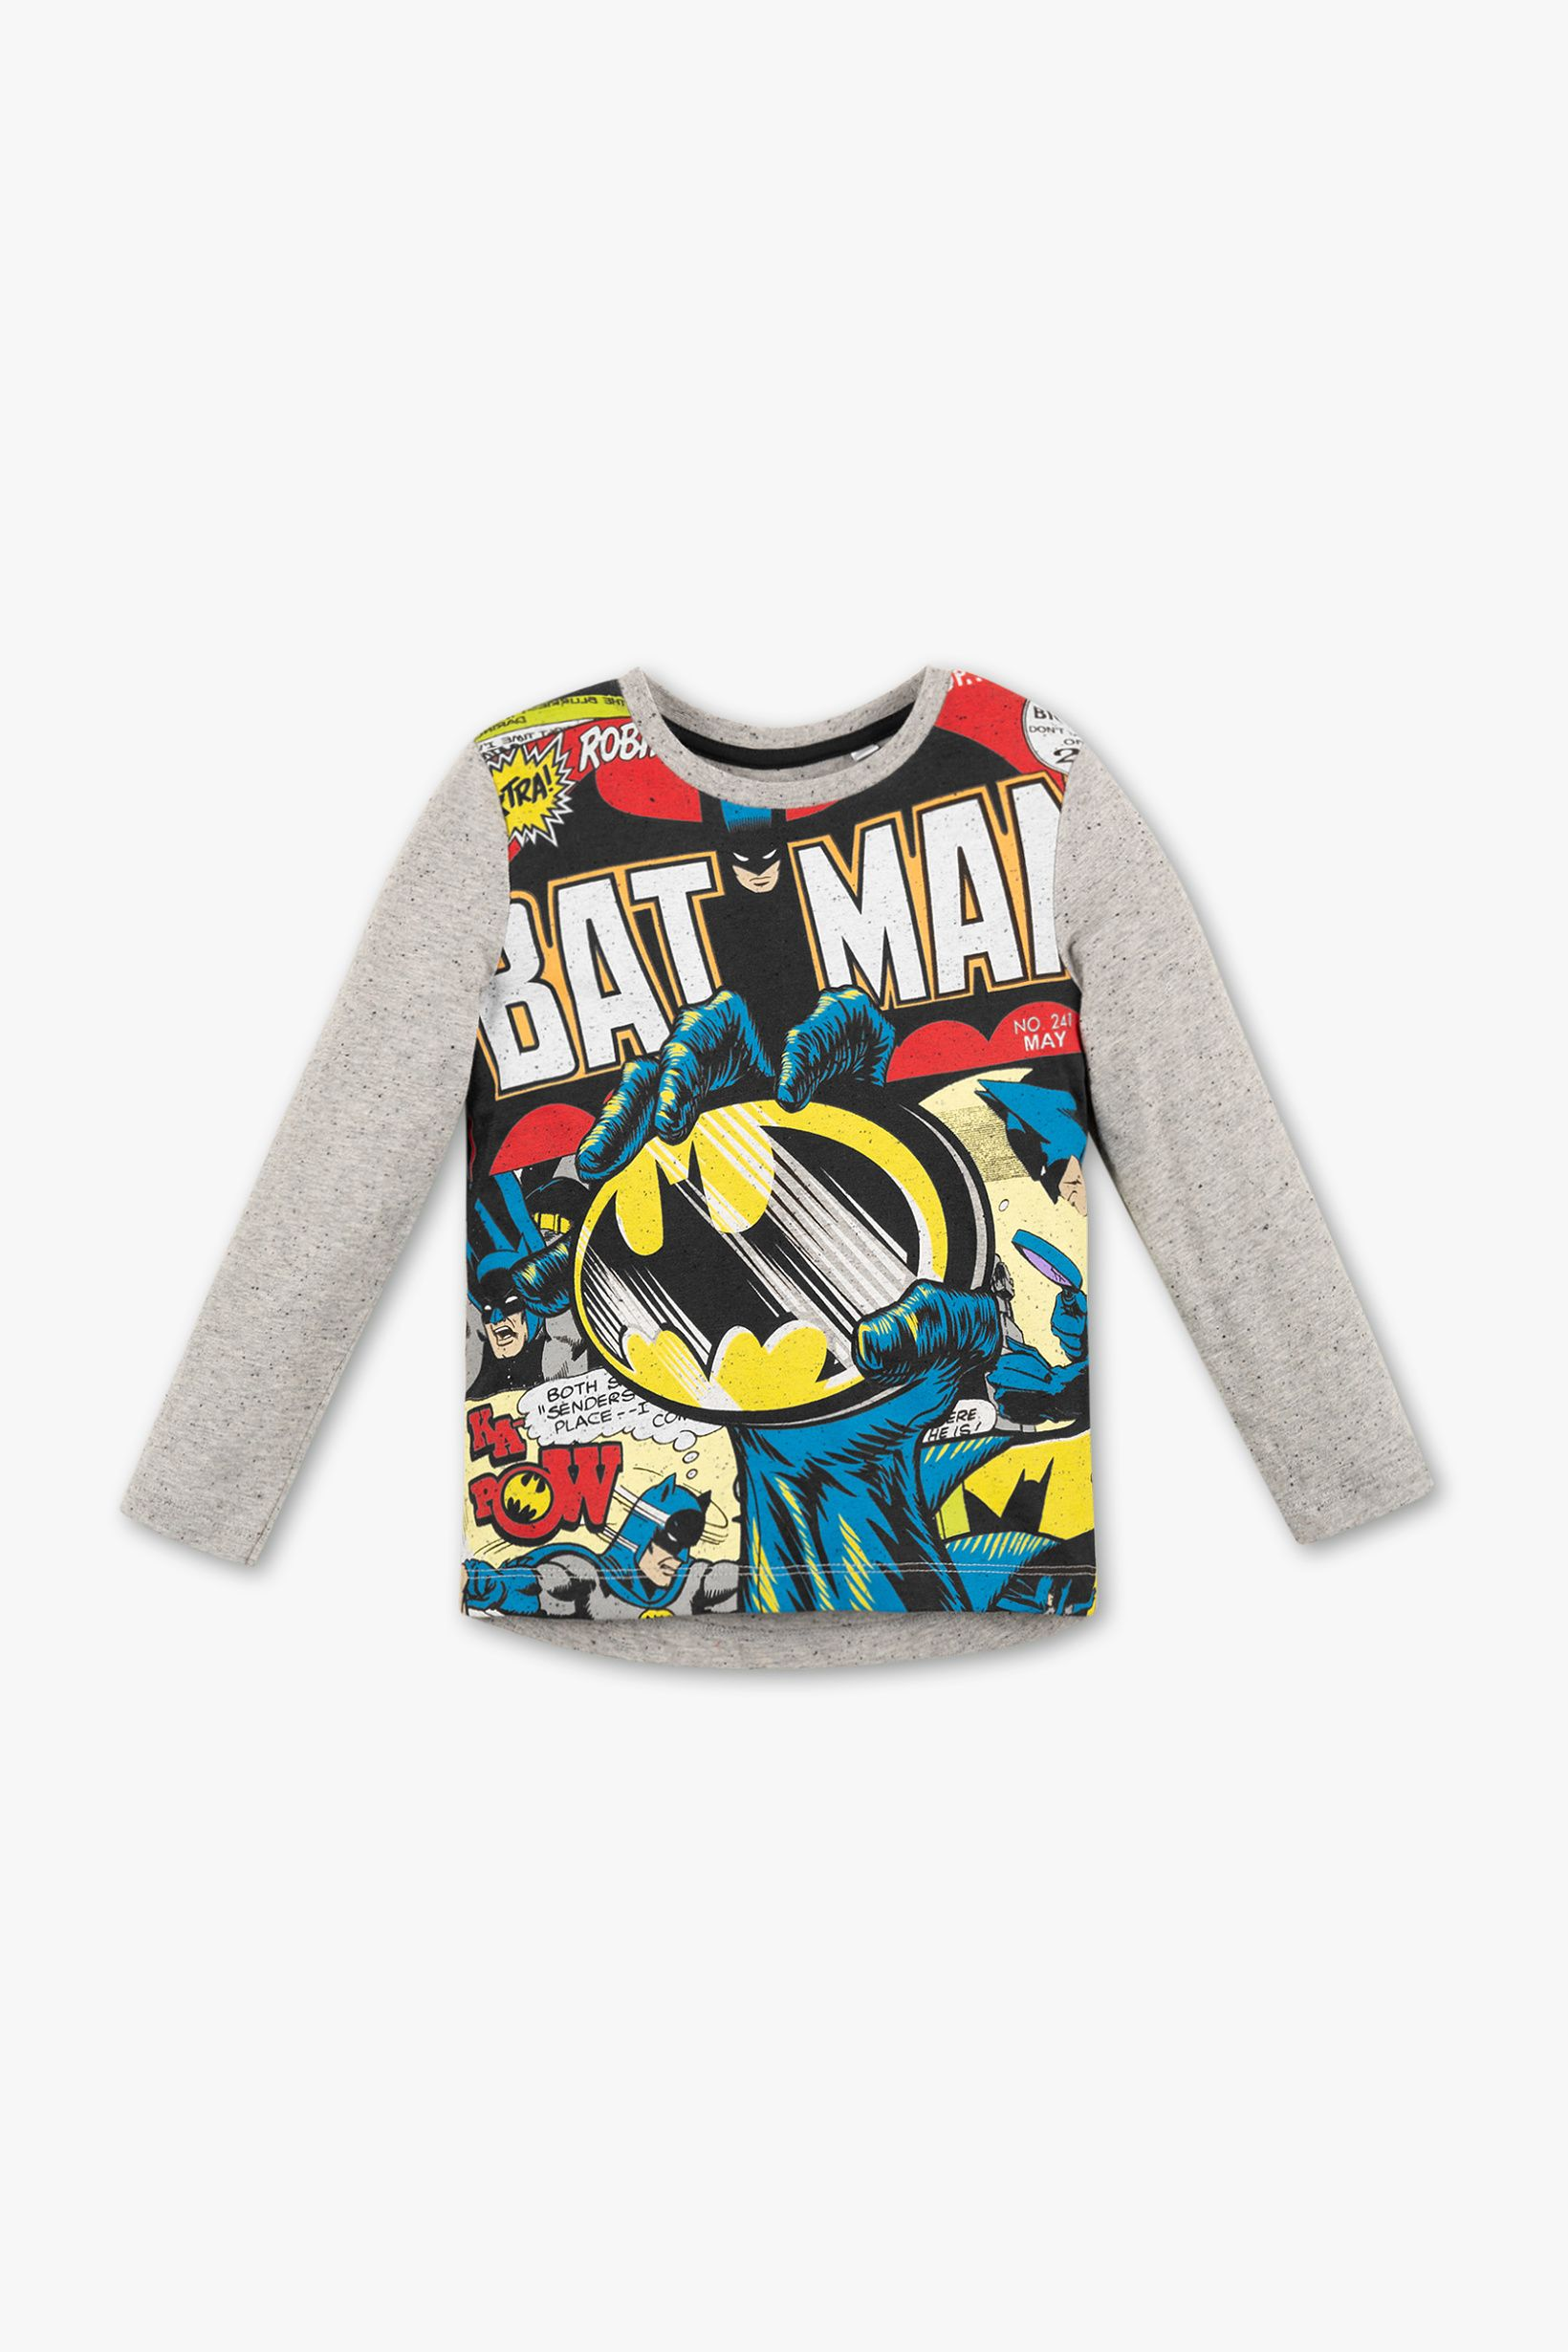 Batman C A Dckids License Warnerbros Trending Outfits Kid